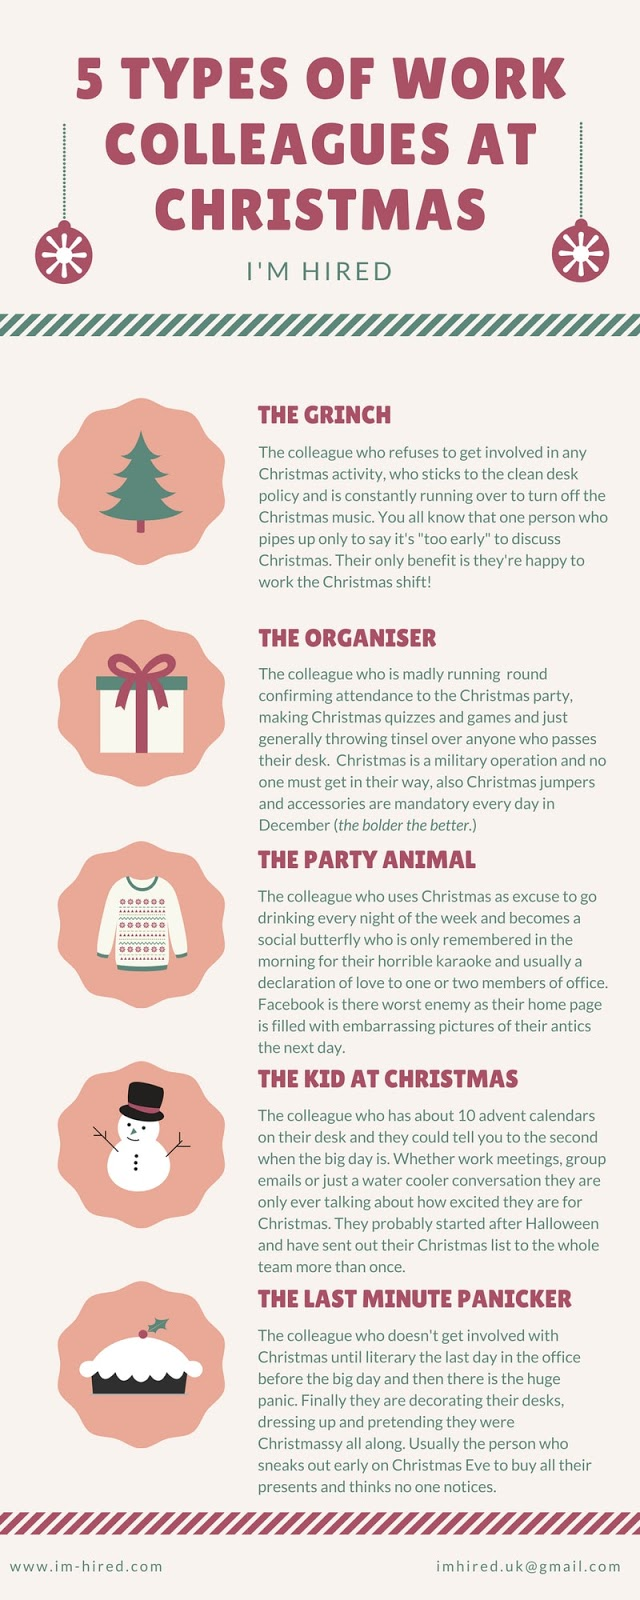 The 5 Types of Work Colleagues at Christmas